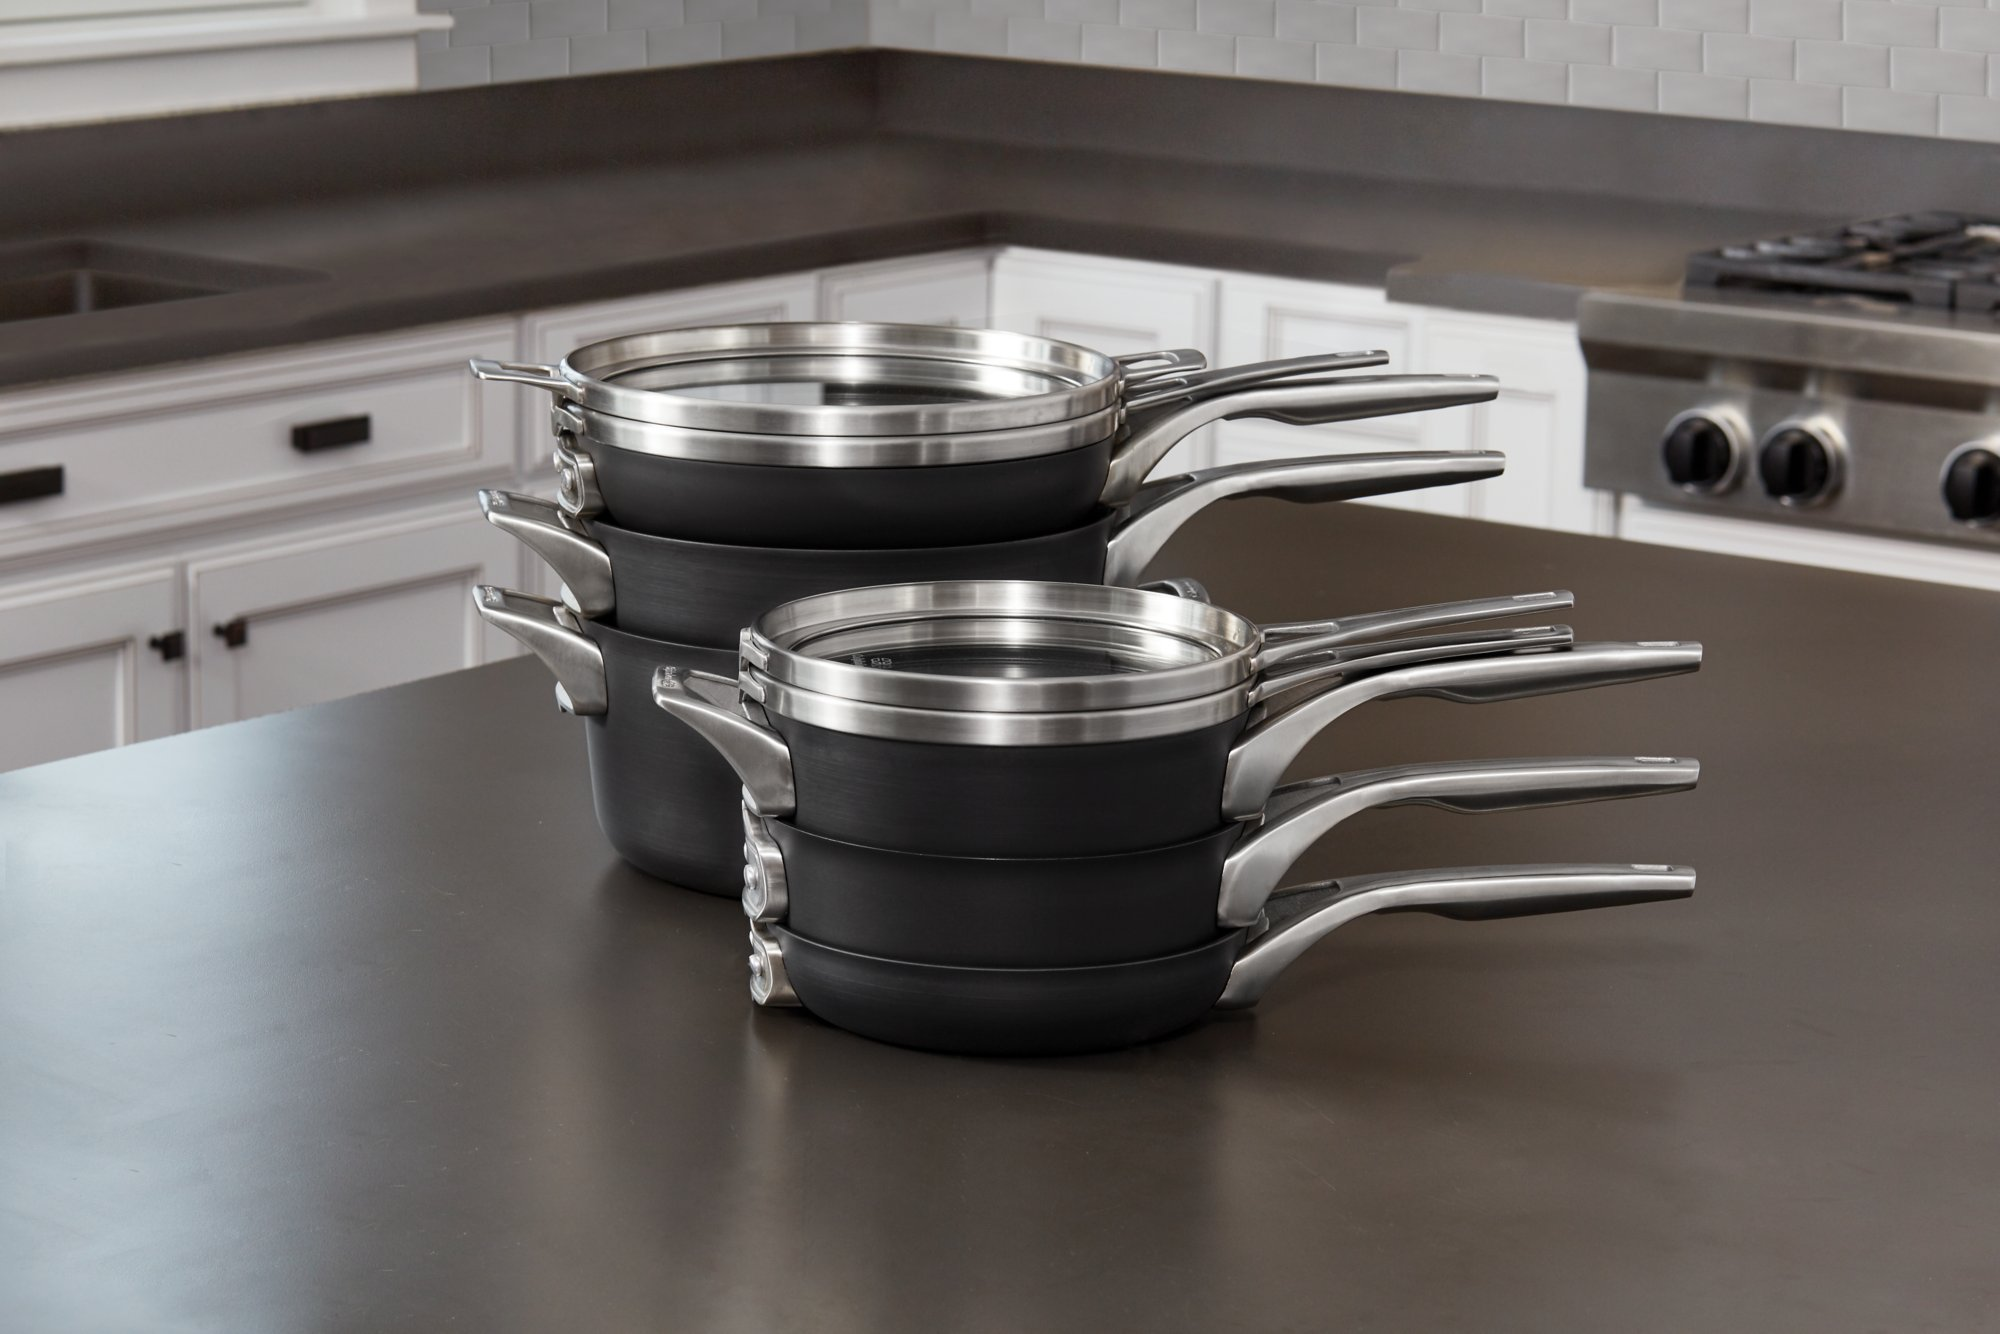 Calphalon Premier Space Saving Hard Anodized Nonstick 3